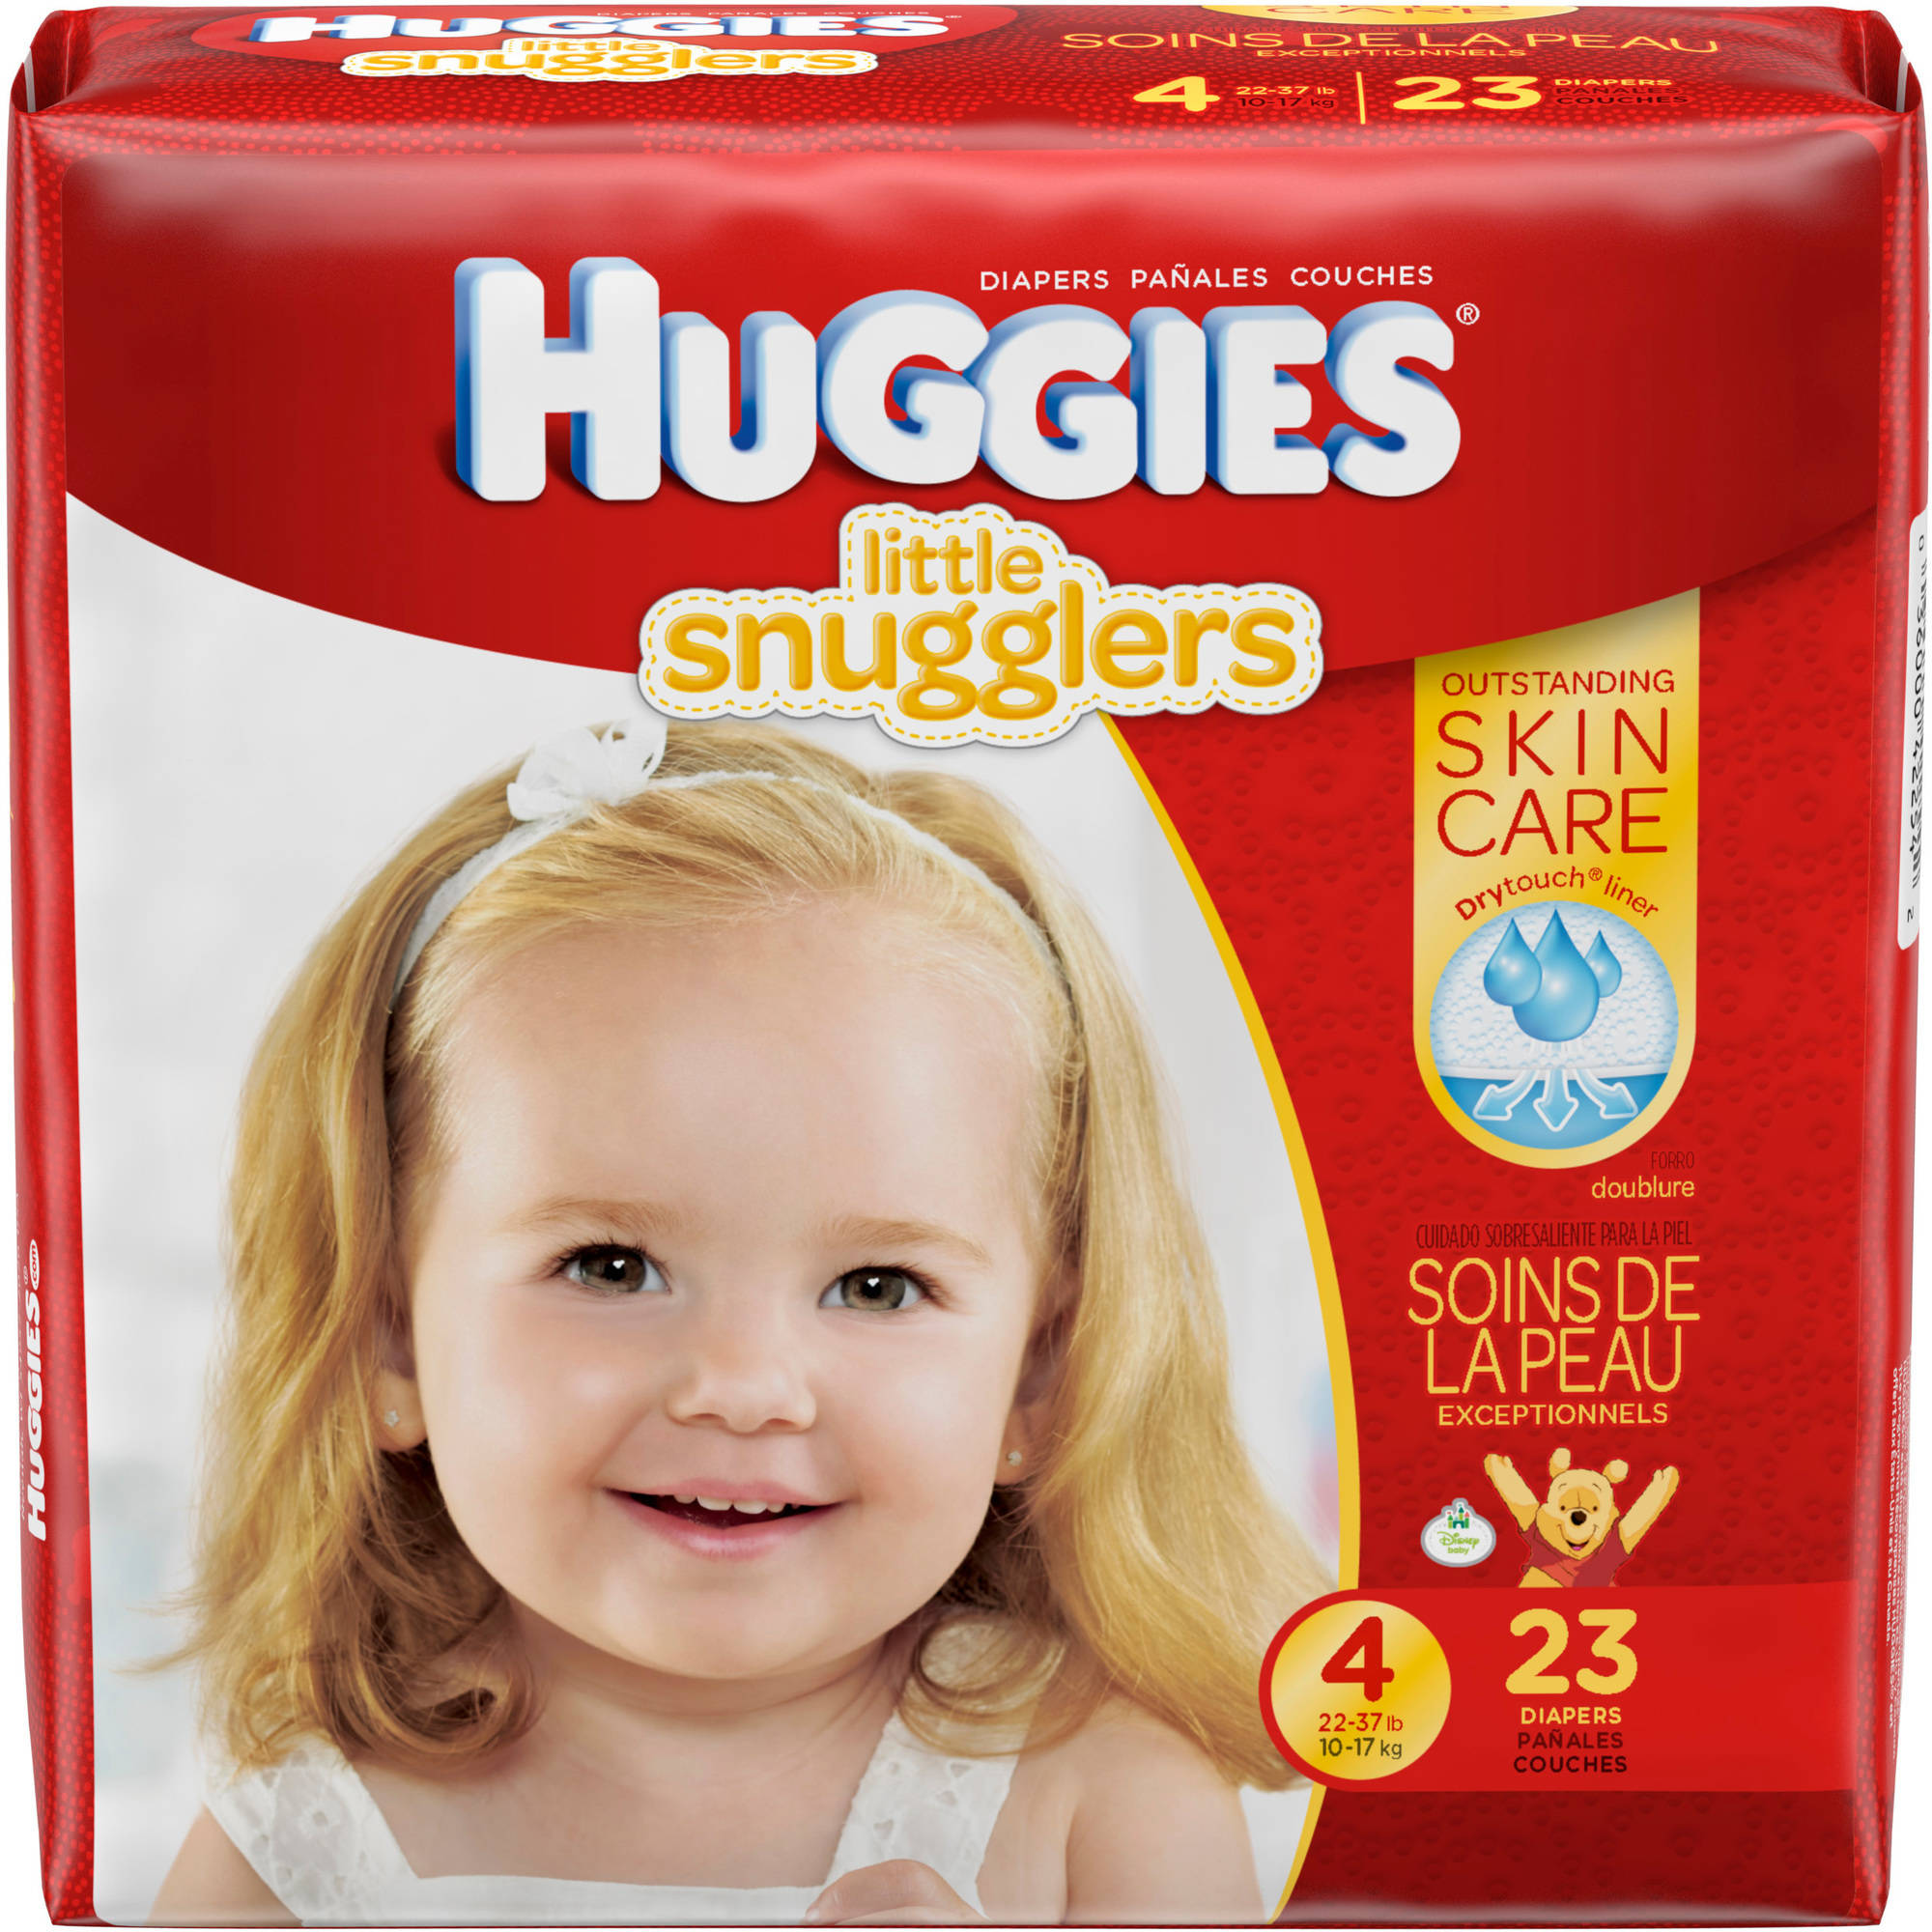 HUGGIES Little Snugglers Diapers, Multipack, (Choose Your Size)